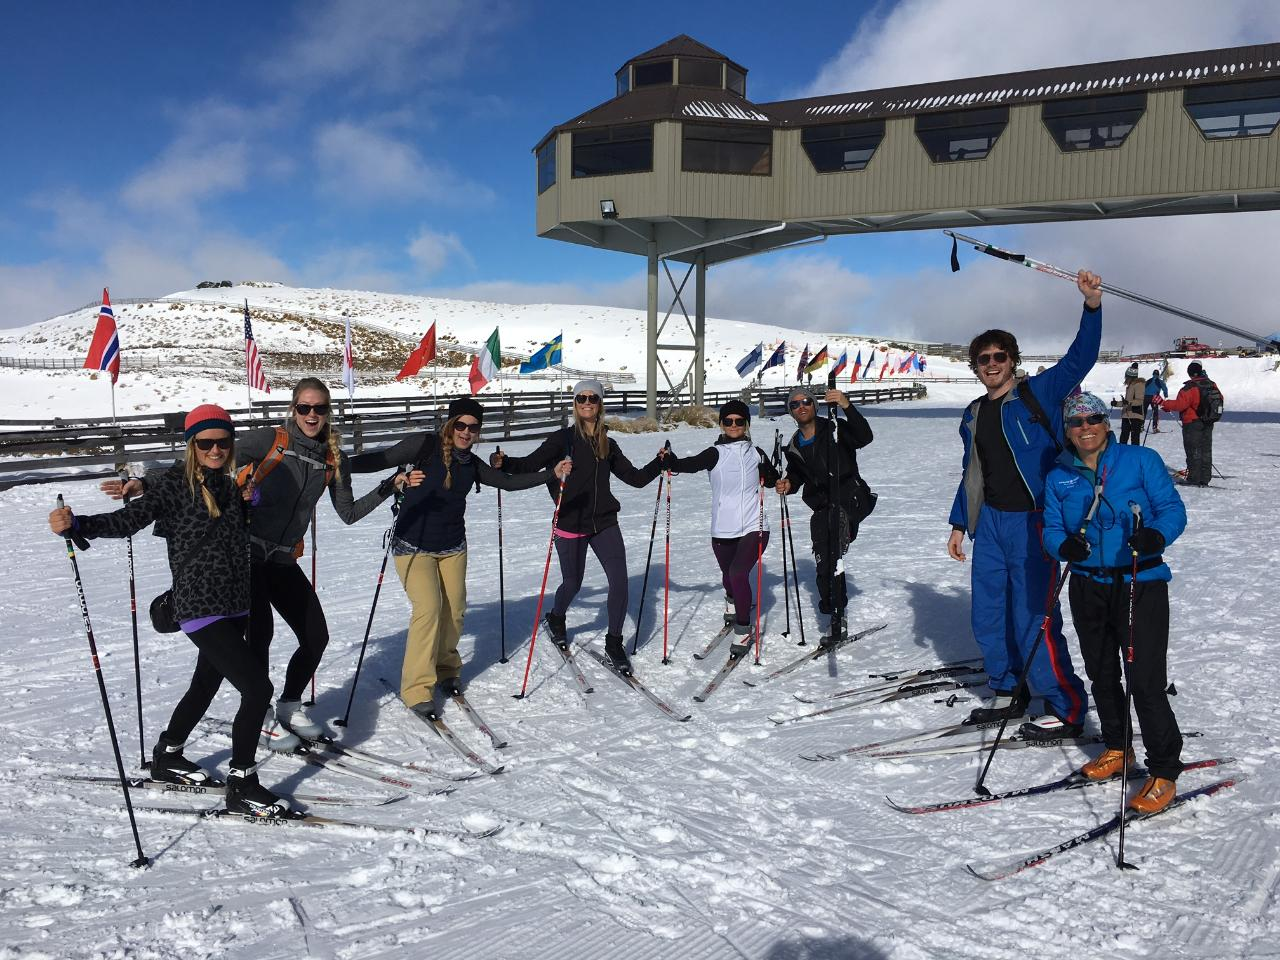 Full-Day Cross-Country Ski Experience